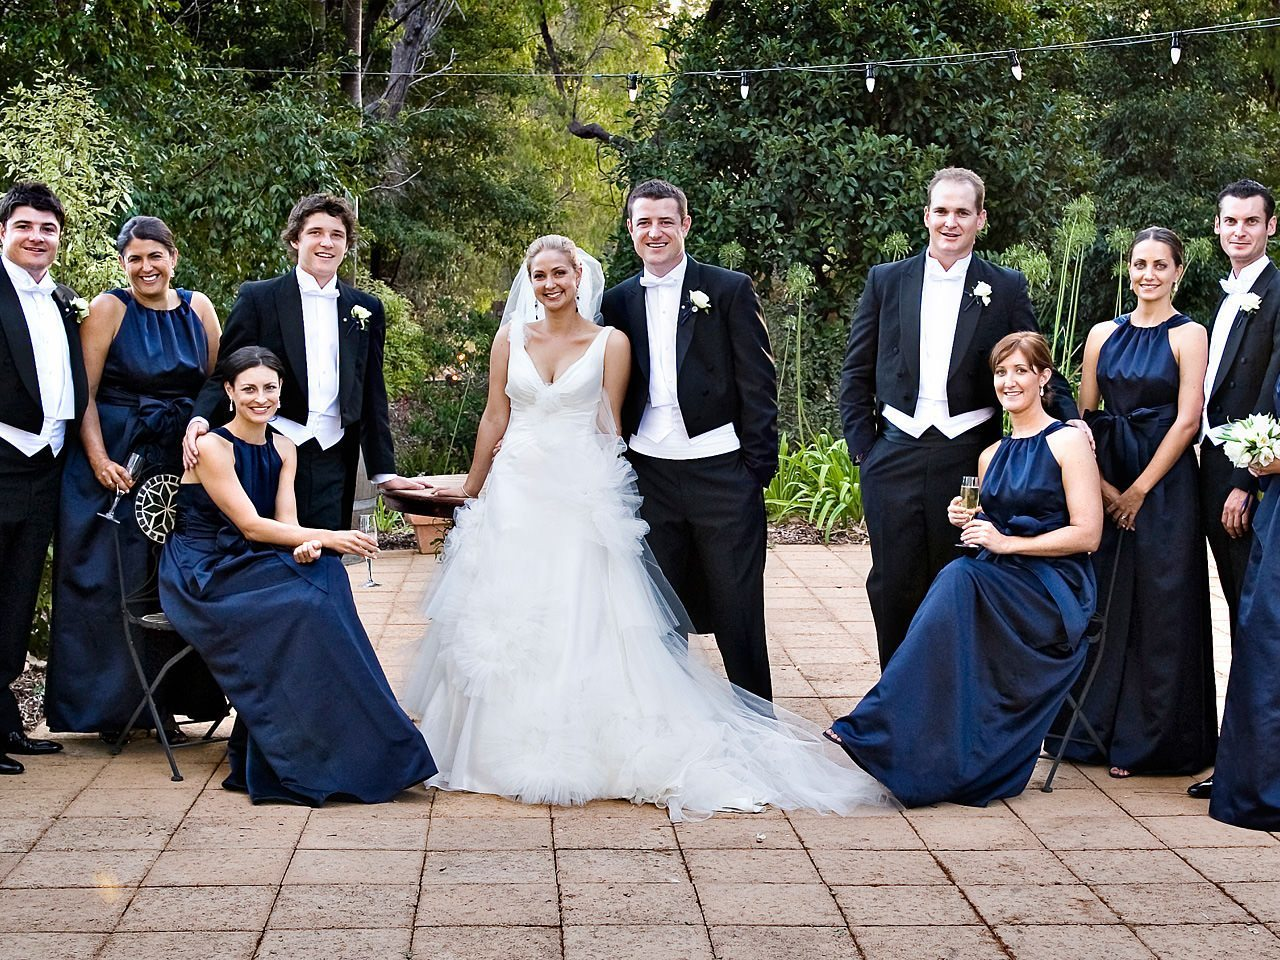 Weddings at Chandeliers on Abbey